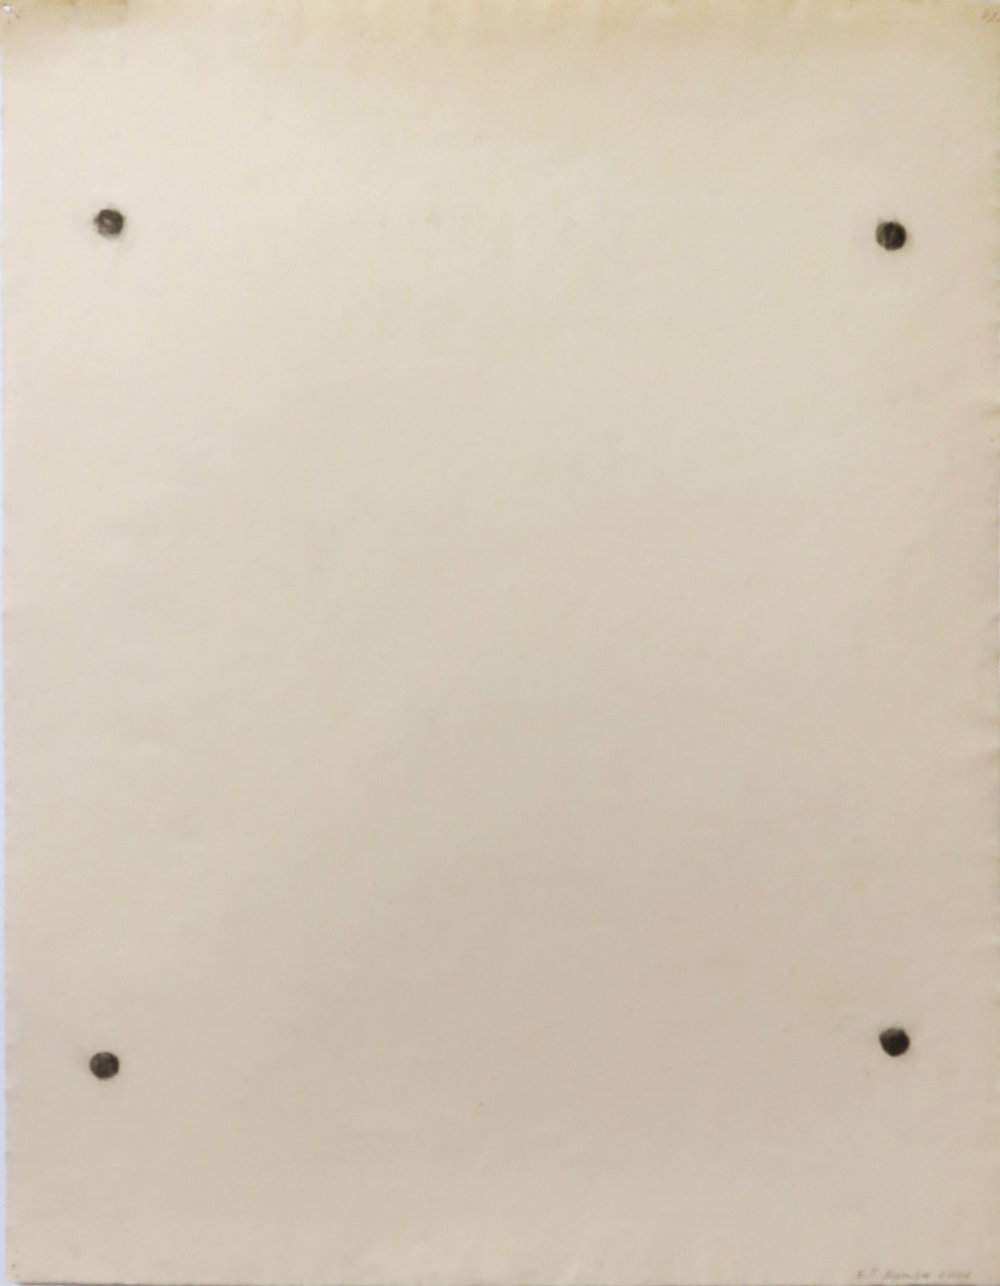 Edward Finnegan,  (Constellation Series),  November, 2006, Graphite on paper, 25.5h w 19.75w in.